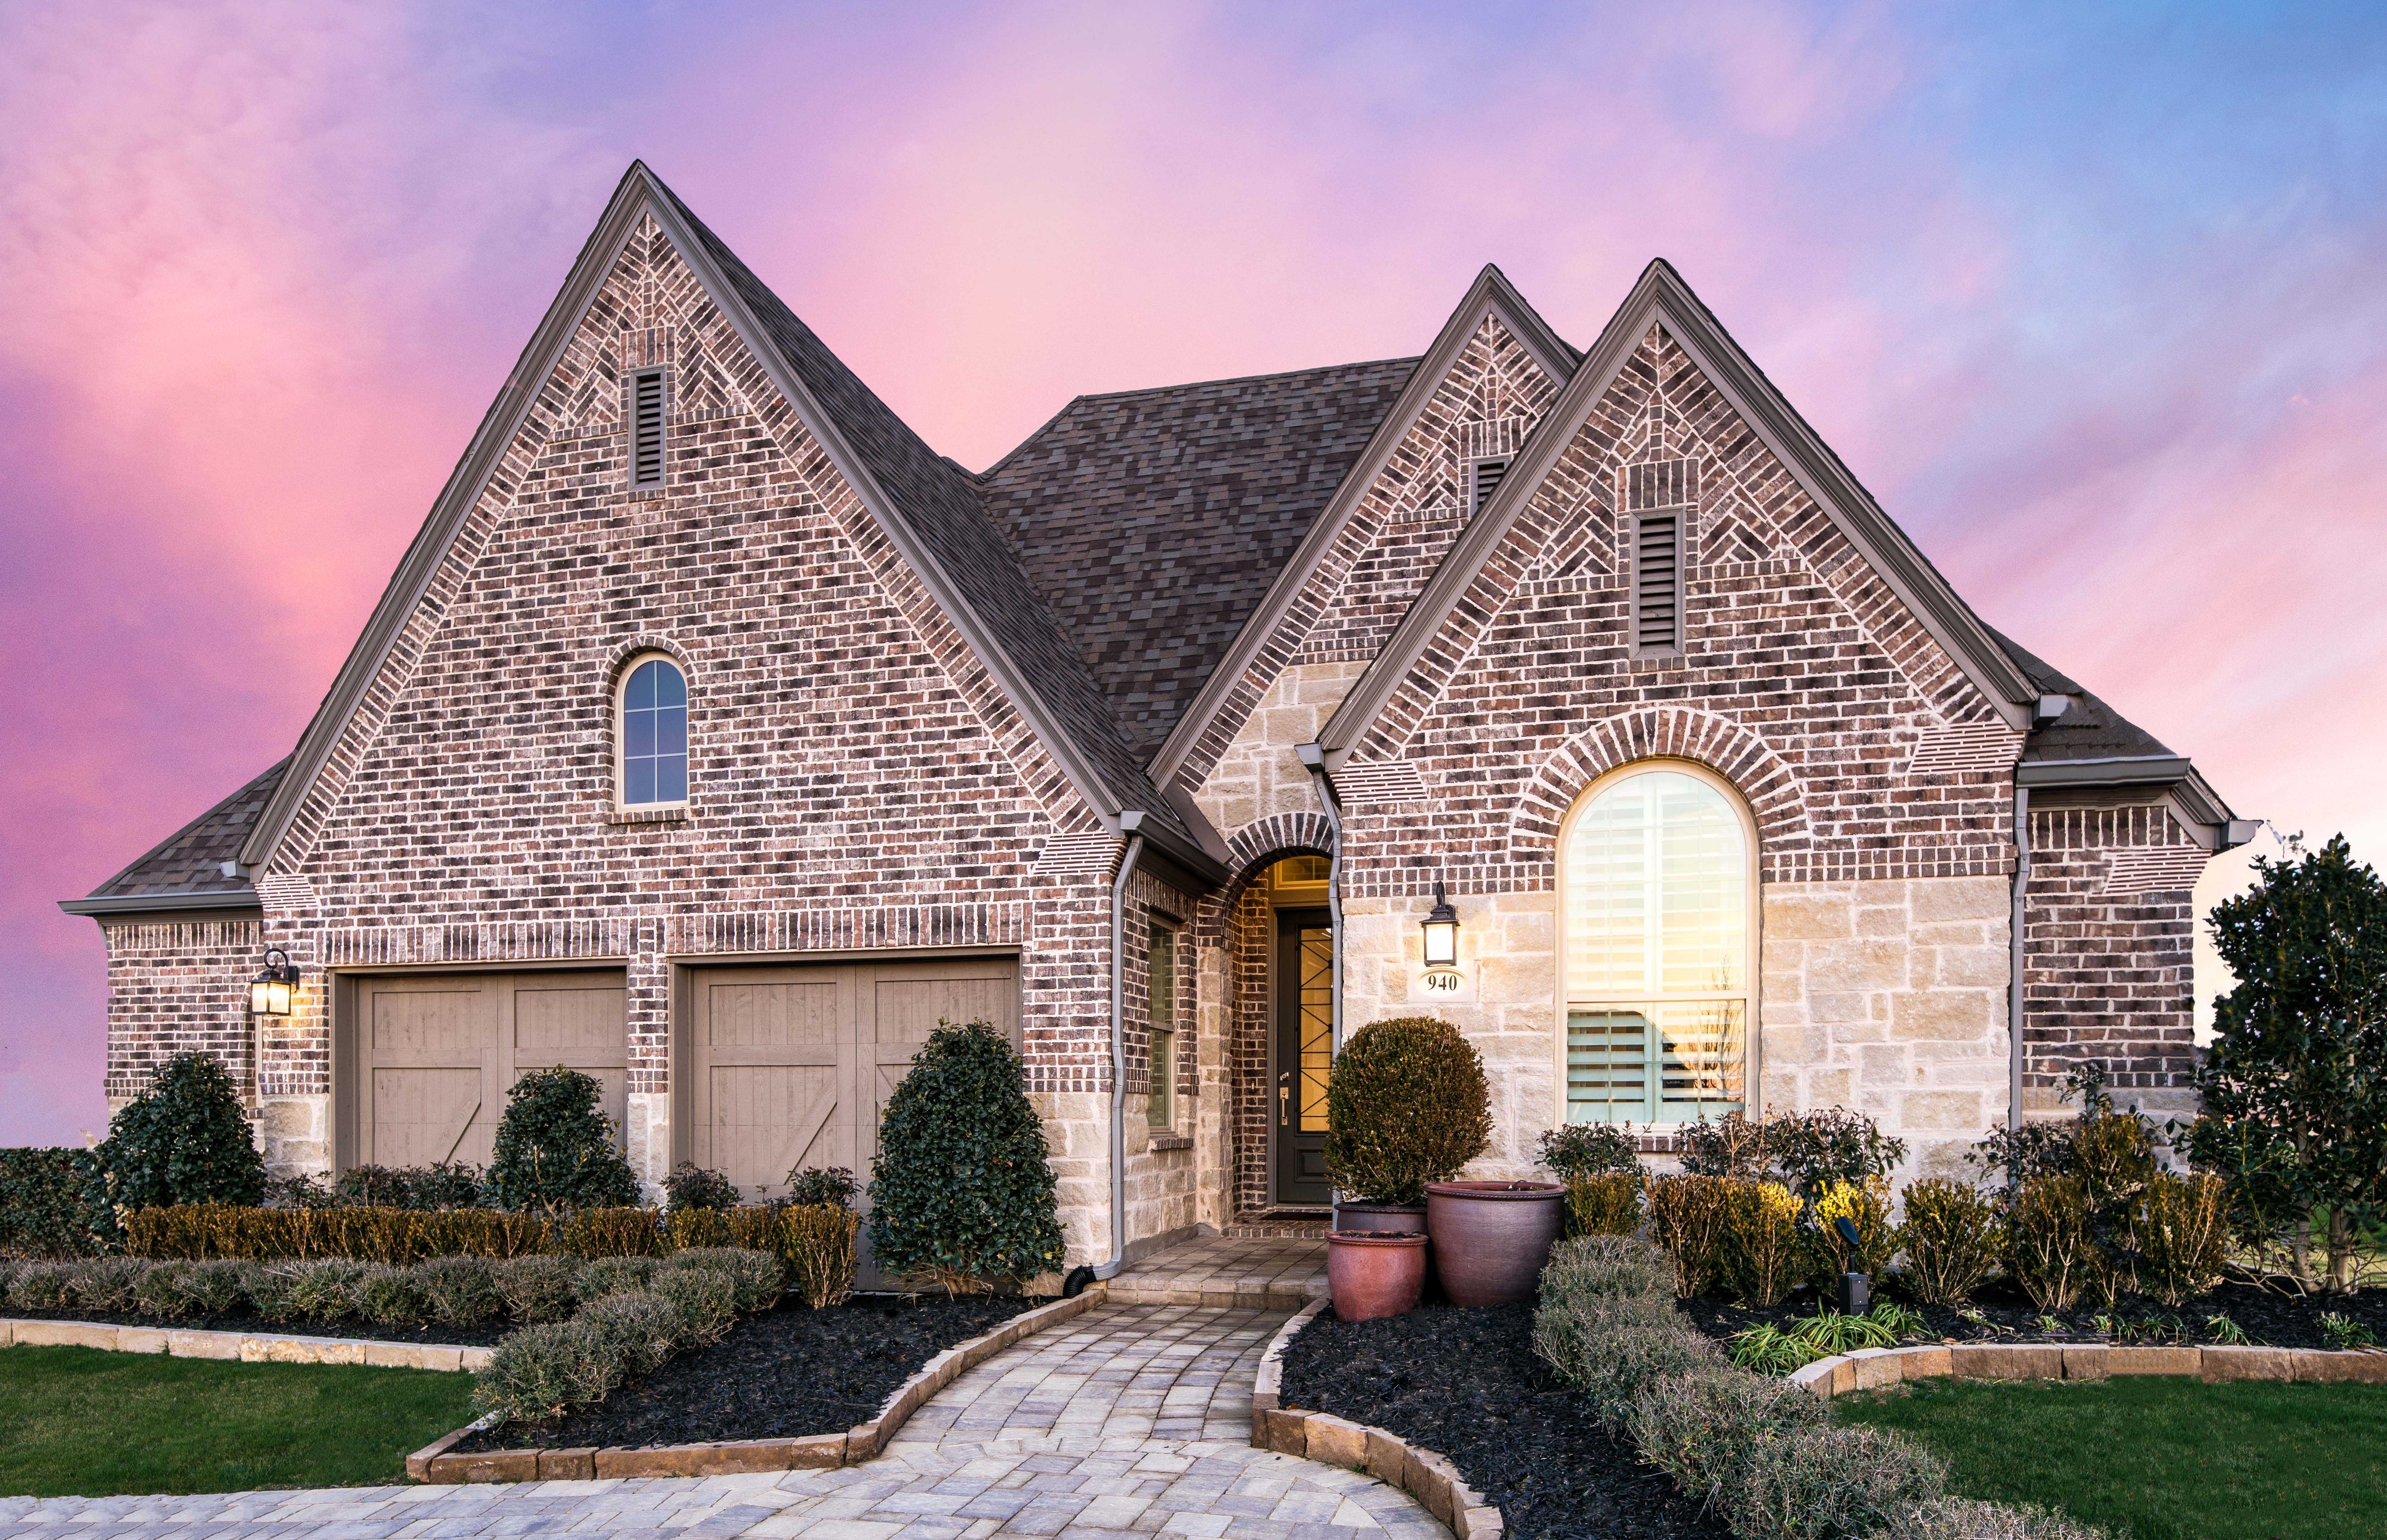 Front in highland homes 554 plan at 940 shooting star